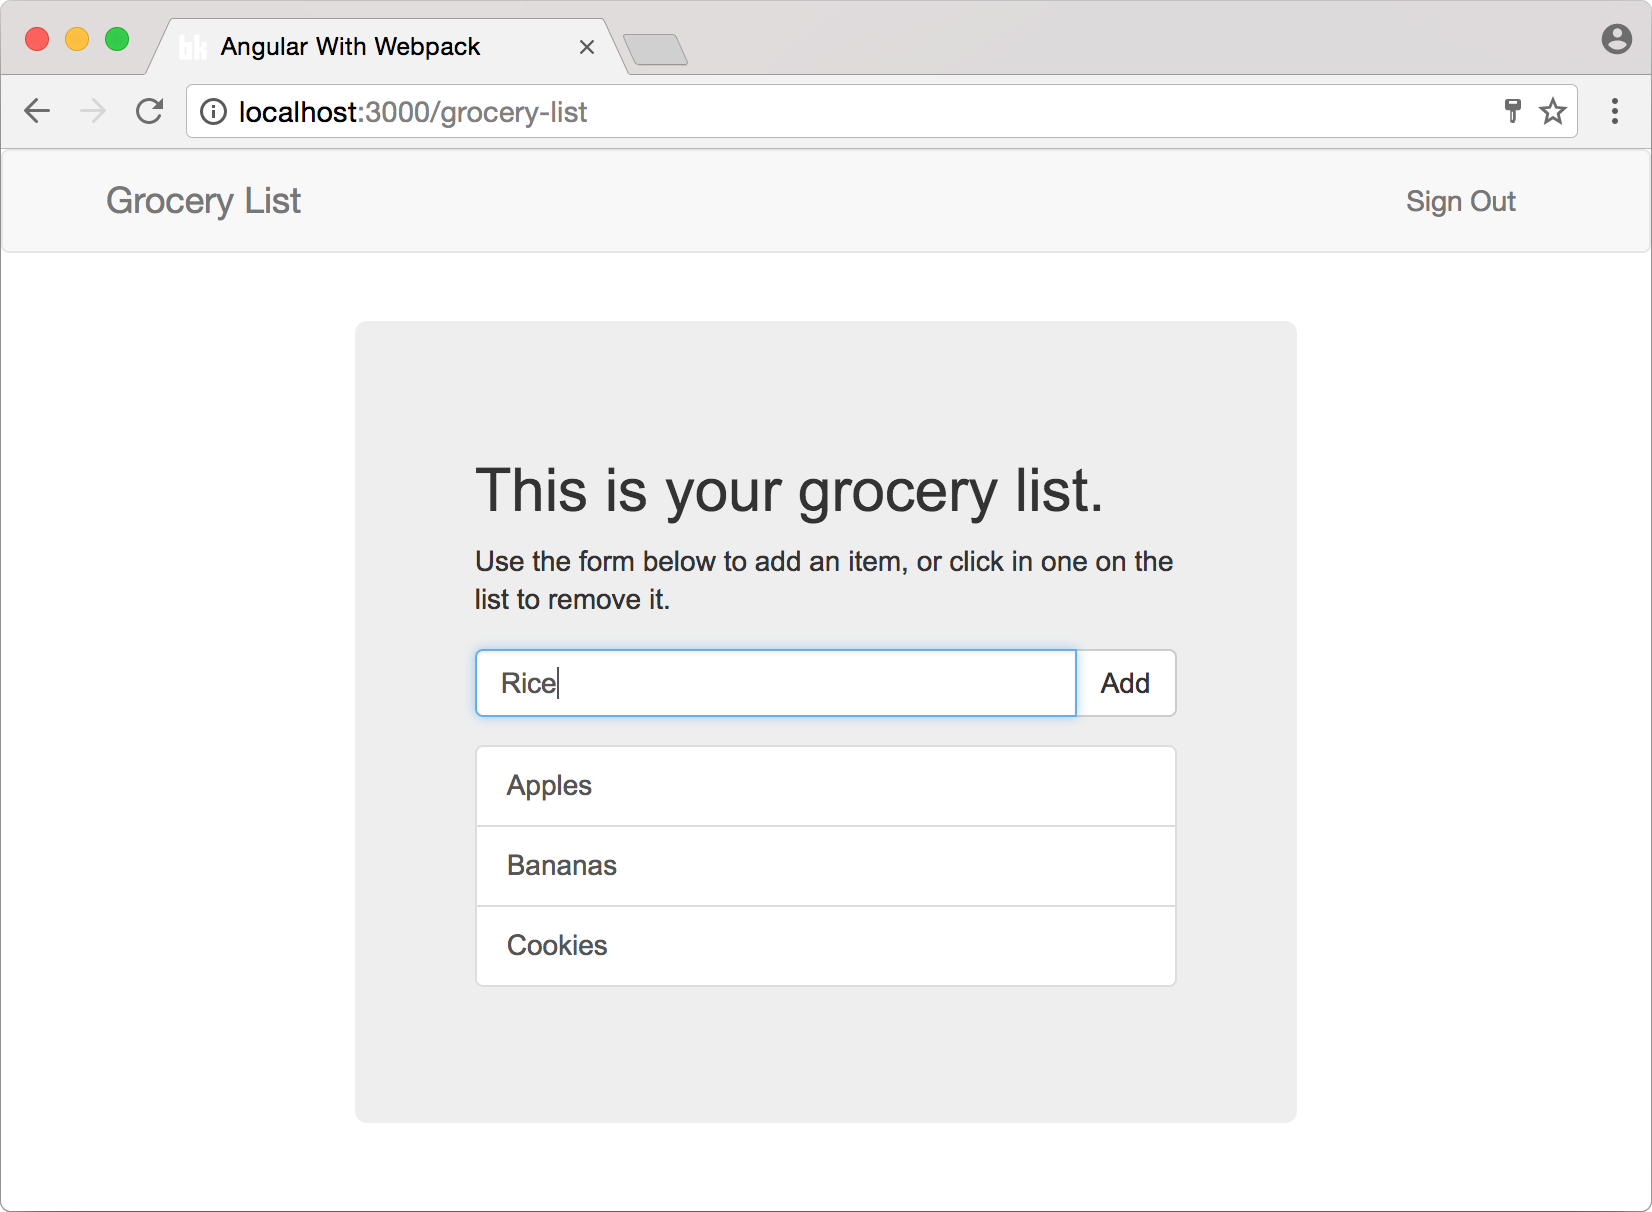 Grocery List app built with Angular 2 and Koa